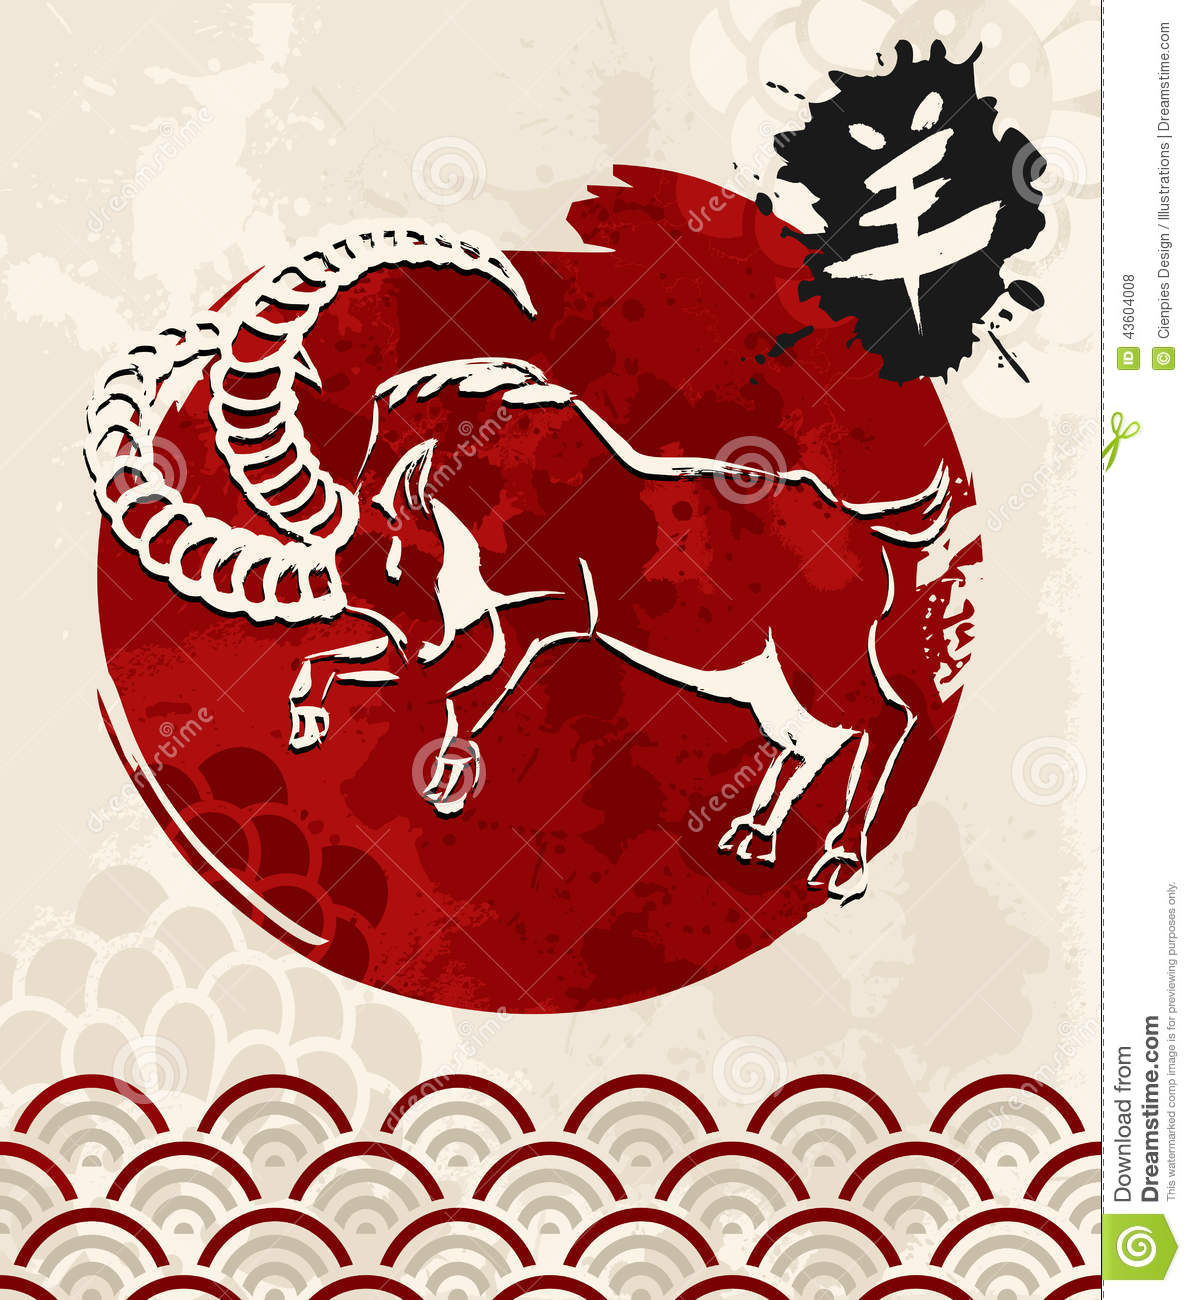 2015 chinese new year of the goat stock vector - illustration of